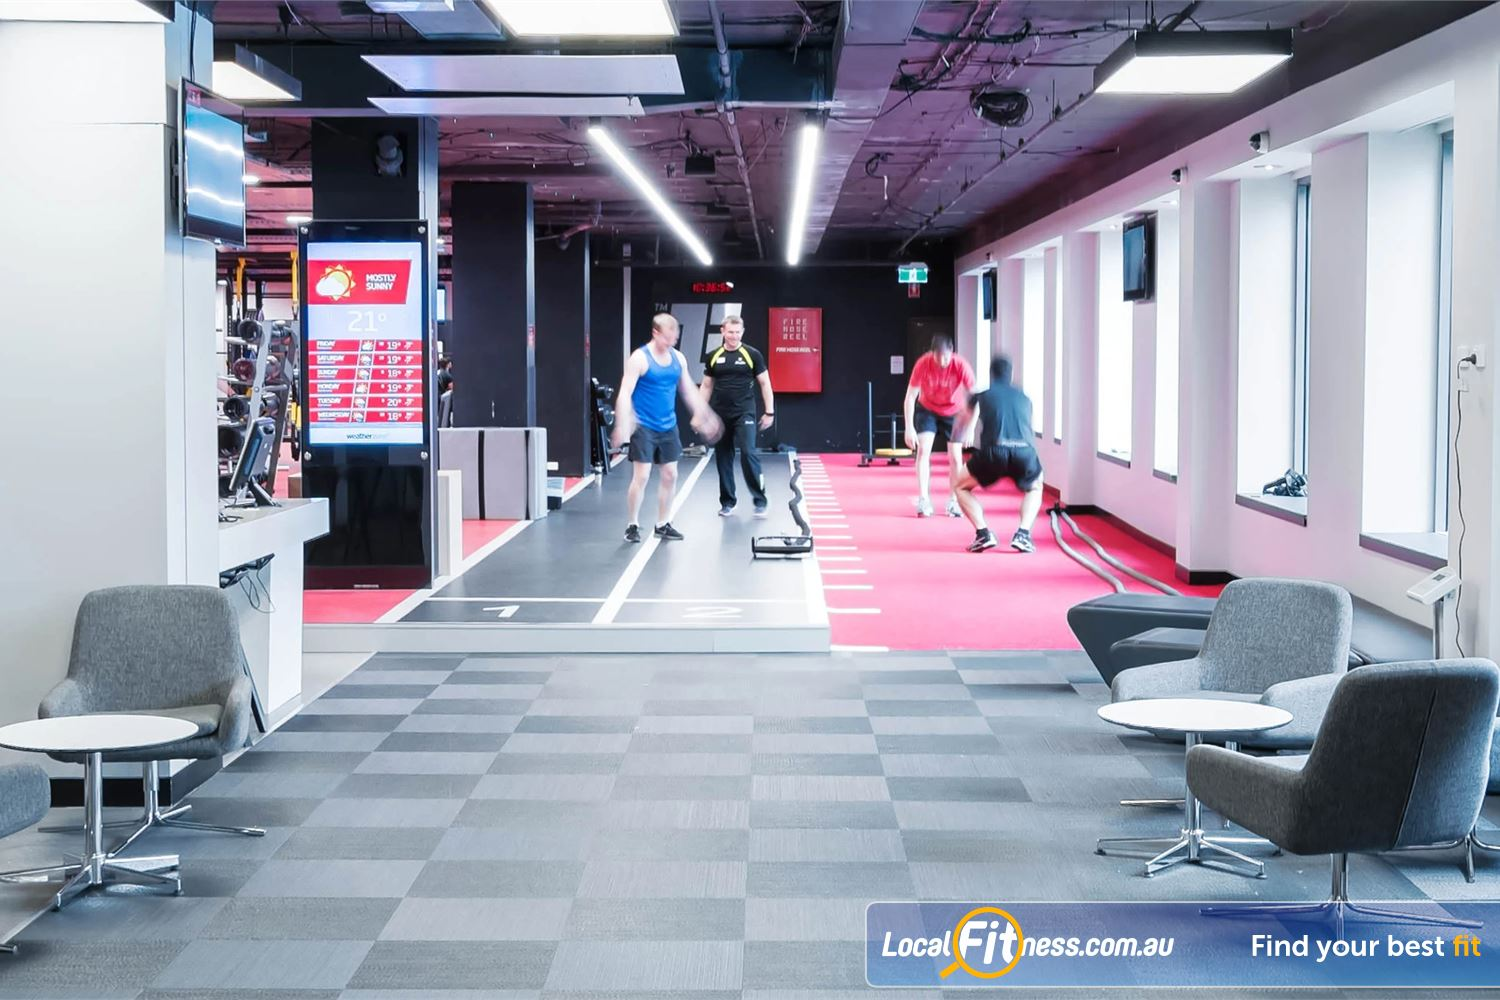 Fitness First Elizabeth Plaza North Sydney Indoor sled and sprint track plus battle rope training at Fitness First North Sydney.